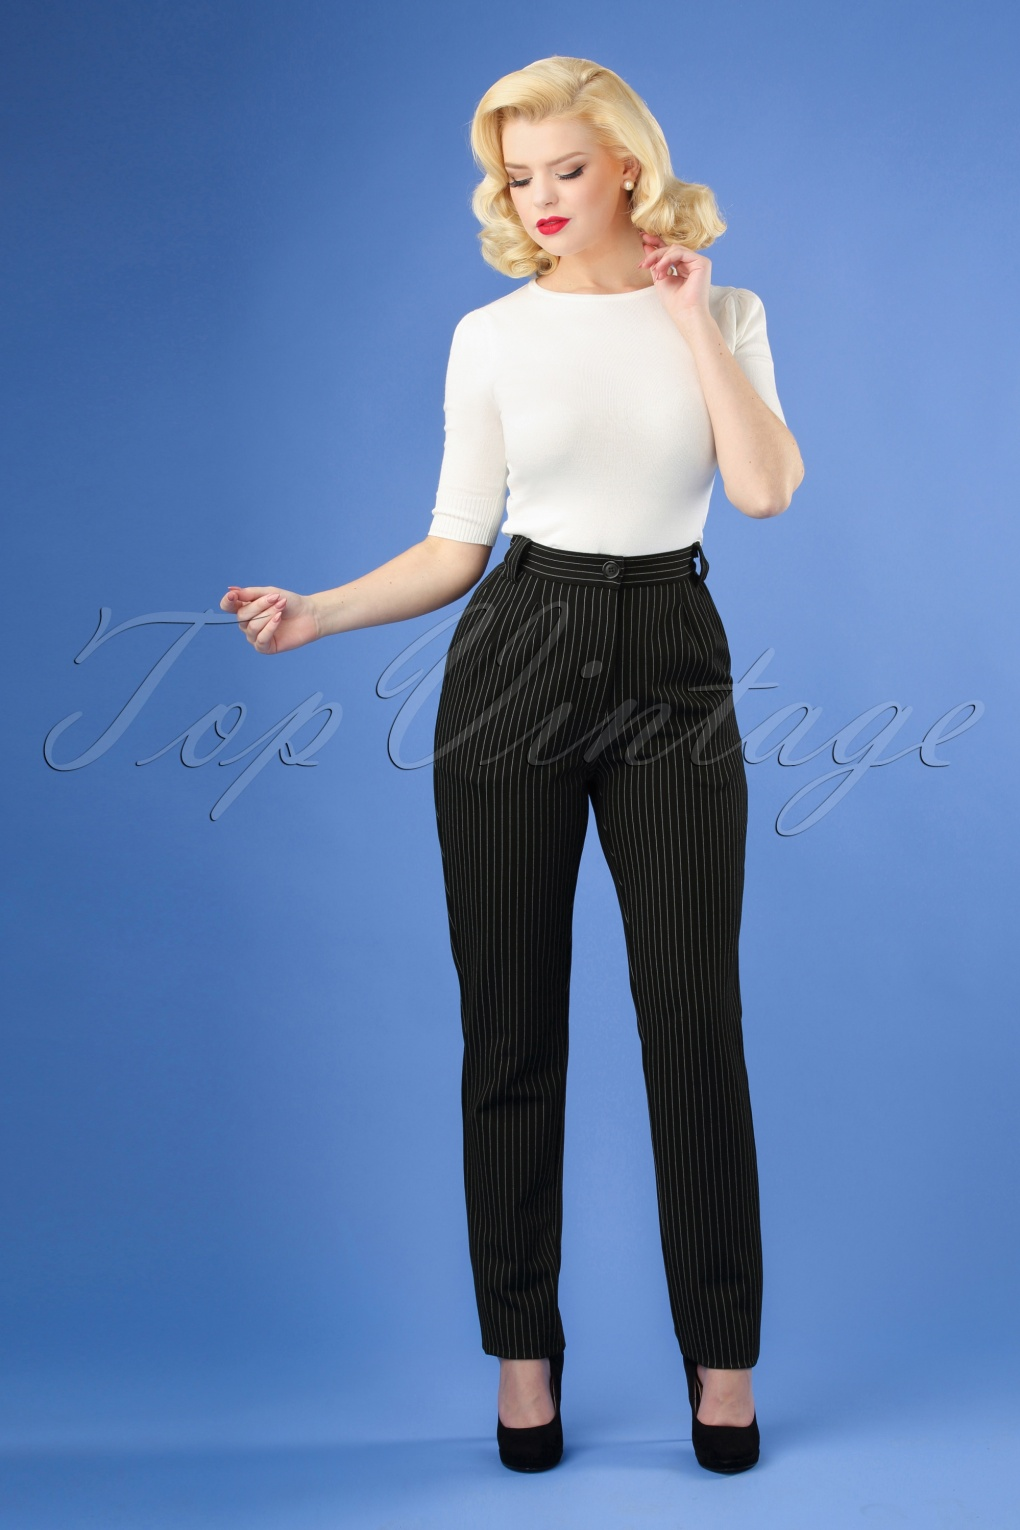 1950s Pants History for Women 50s High Waist Classic Pinstripe Pants in Black £86.86 AT vintagedancer.com